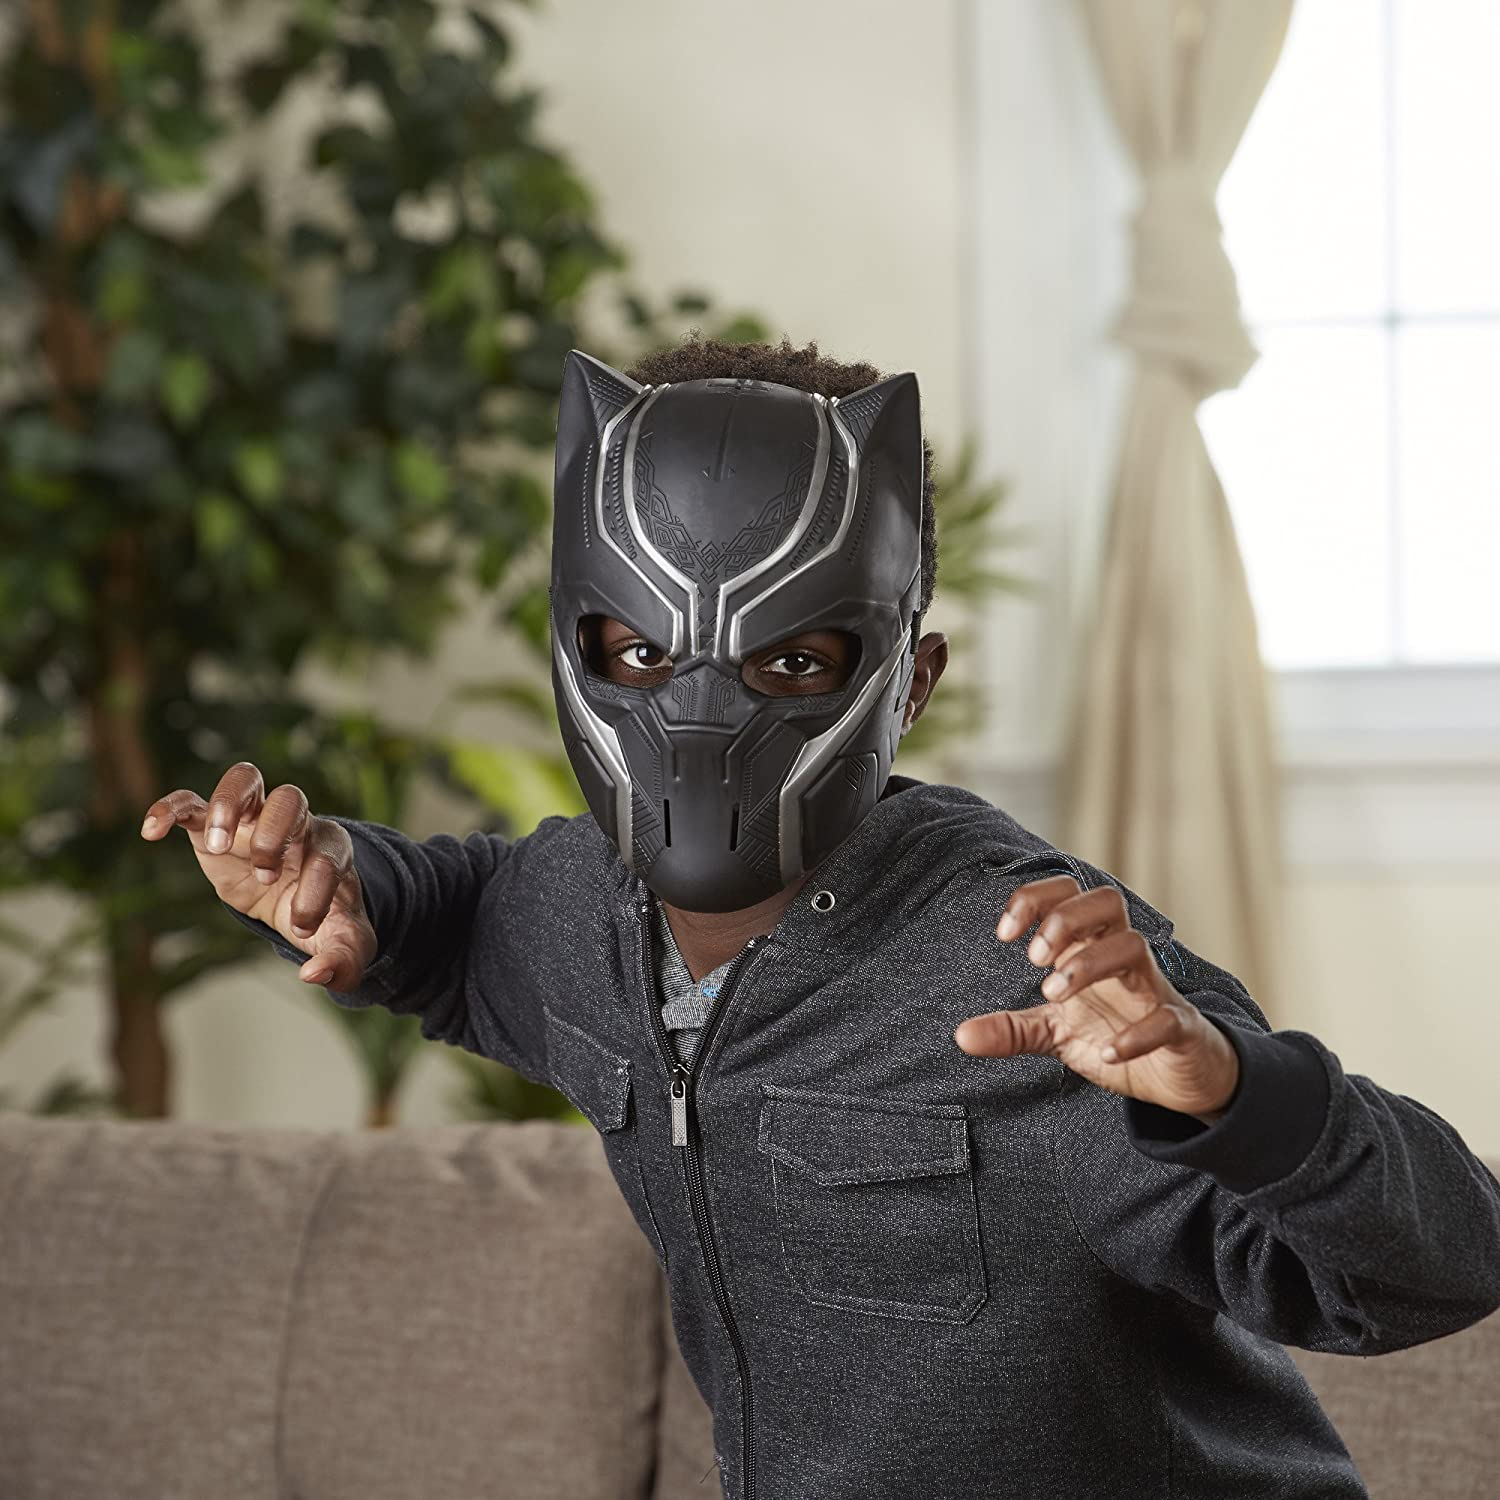 Panther Mask Pretend Play Mask Cosplay Dress Up Mask Halloween Costume Creative Play Black Panther Inspired Mask Kid /& Adult